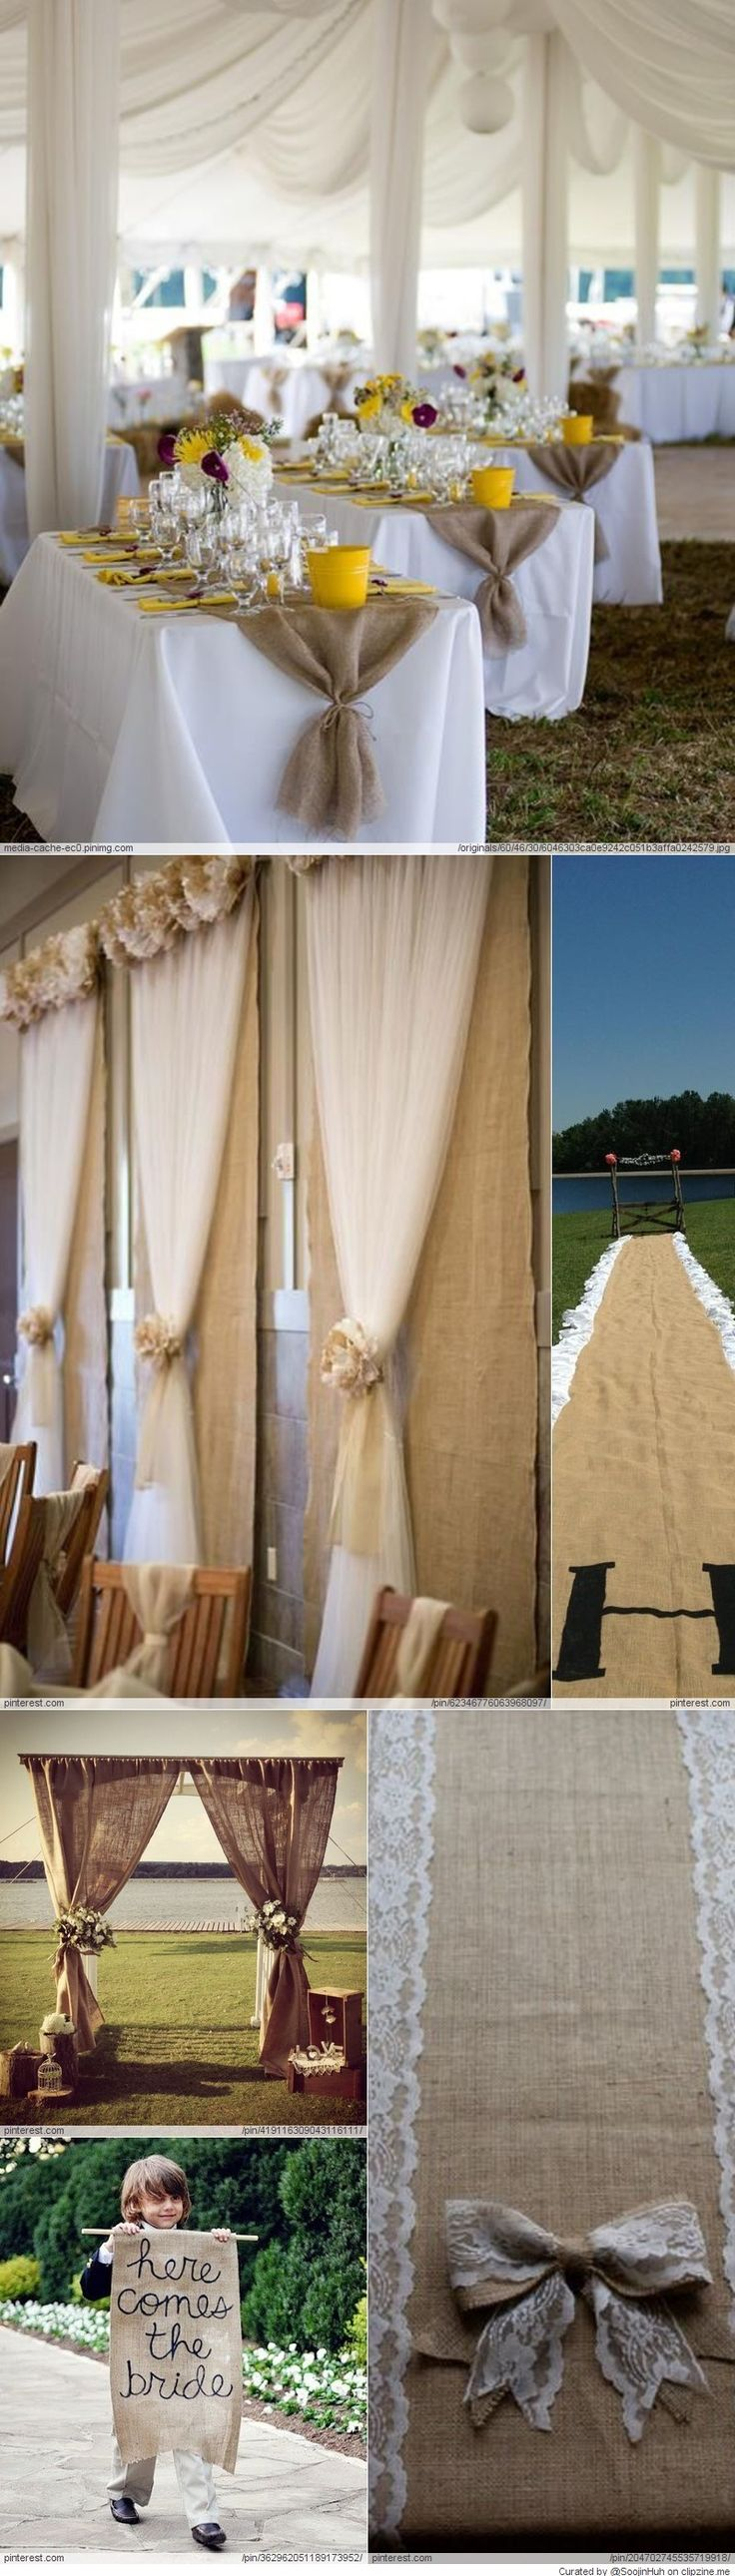 Tie burlap on ends of tables and use curtain rod with burlap for arch way at ceremony.  Copper accents, ivory..